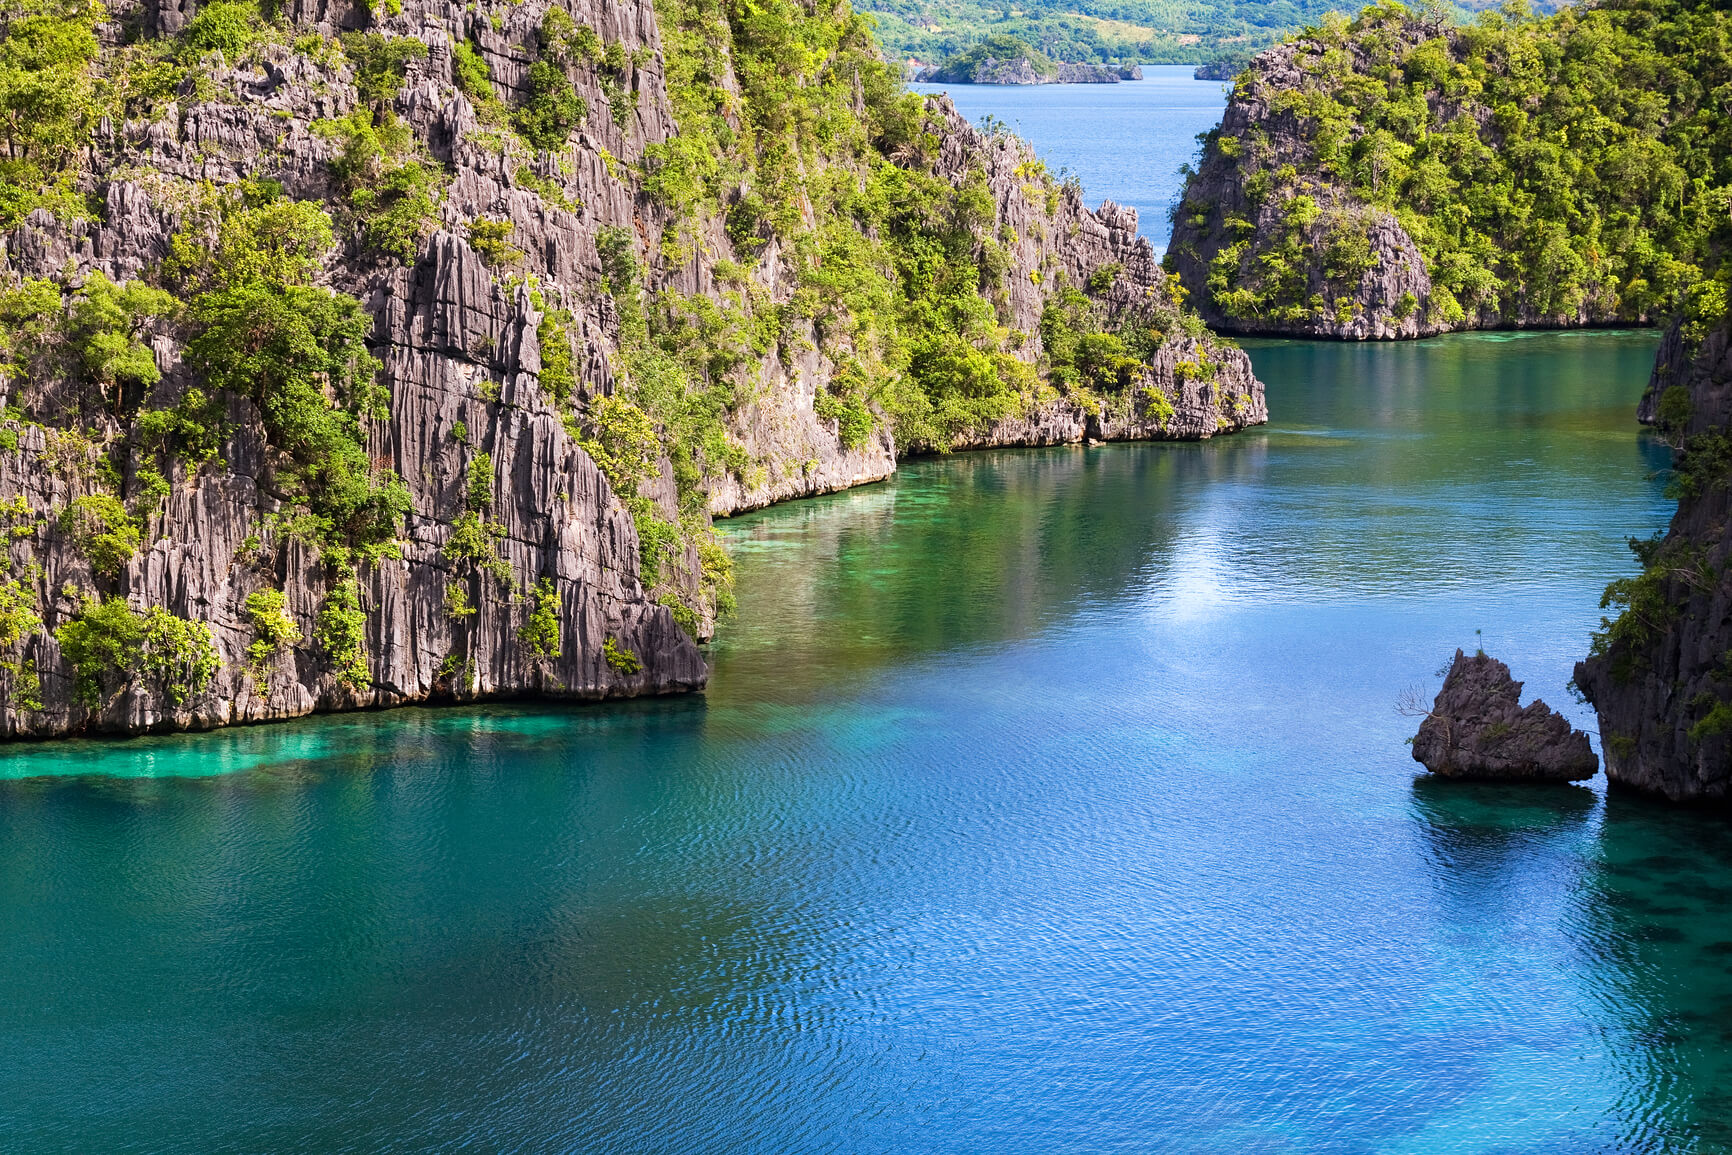 Milan, Italy to Manila, Philippines for only €382 roundtrip